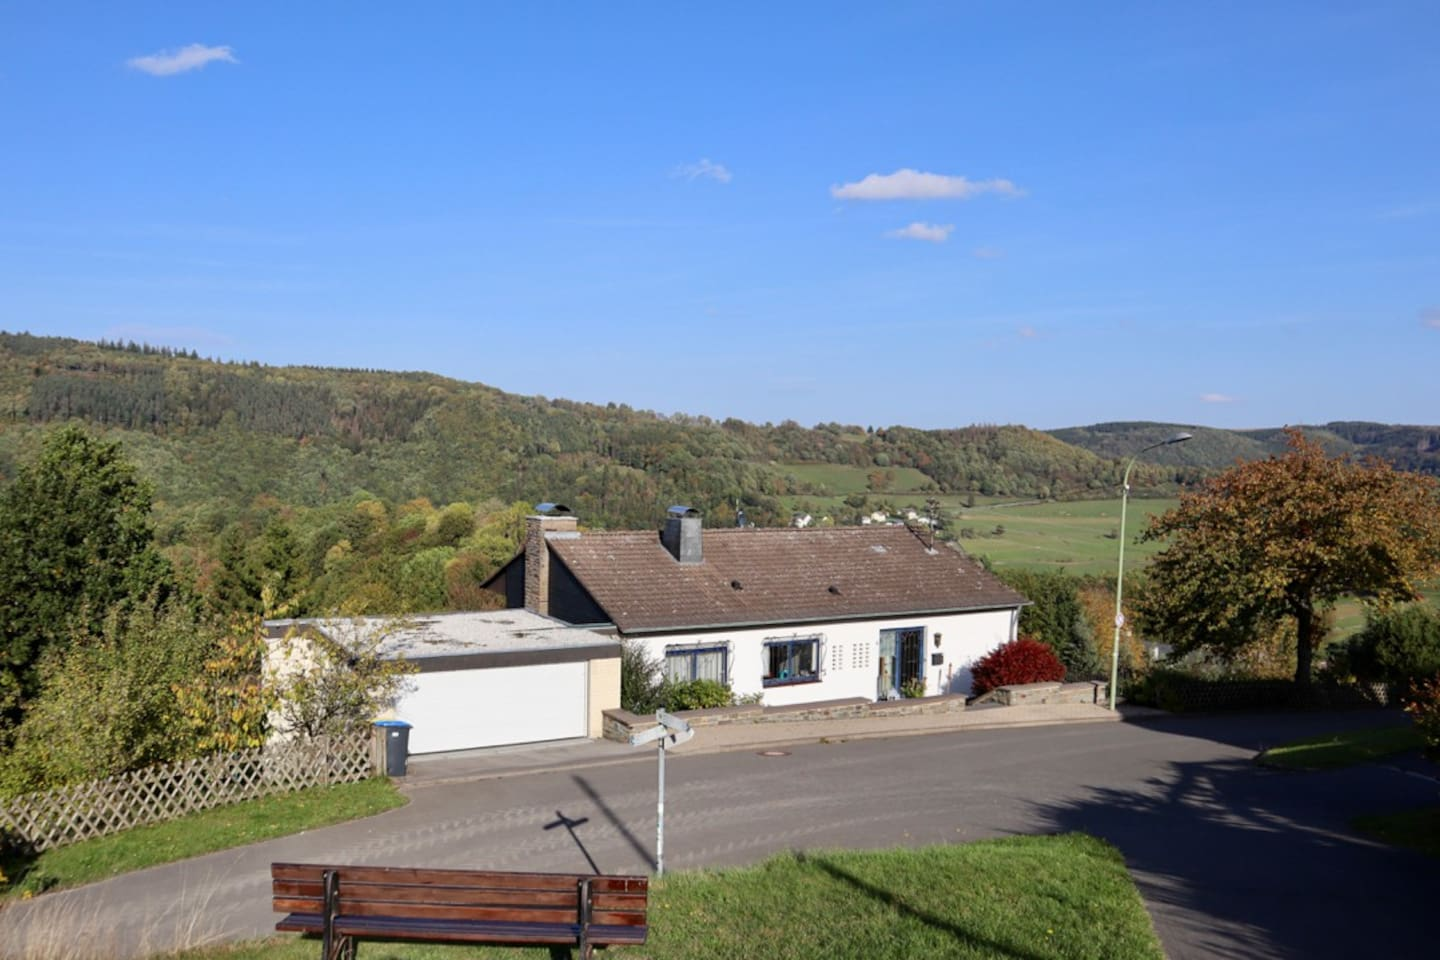 Blick auf Dedenborn - holidayhouse in the middle of the Nord-Eifel Germany.